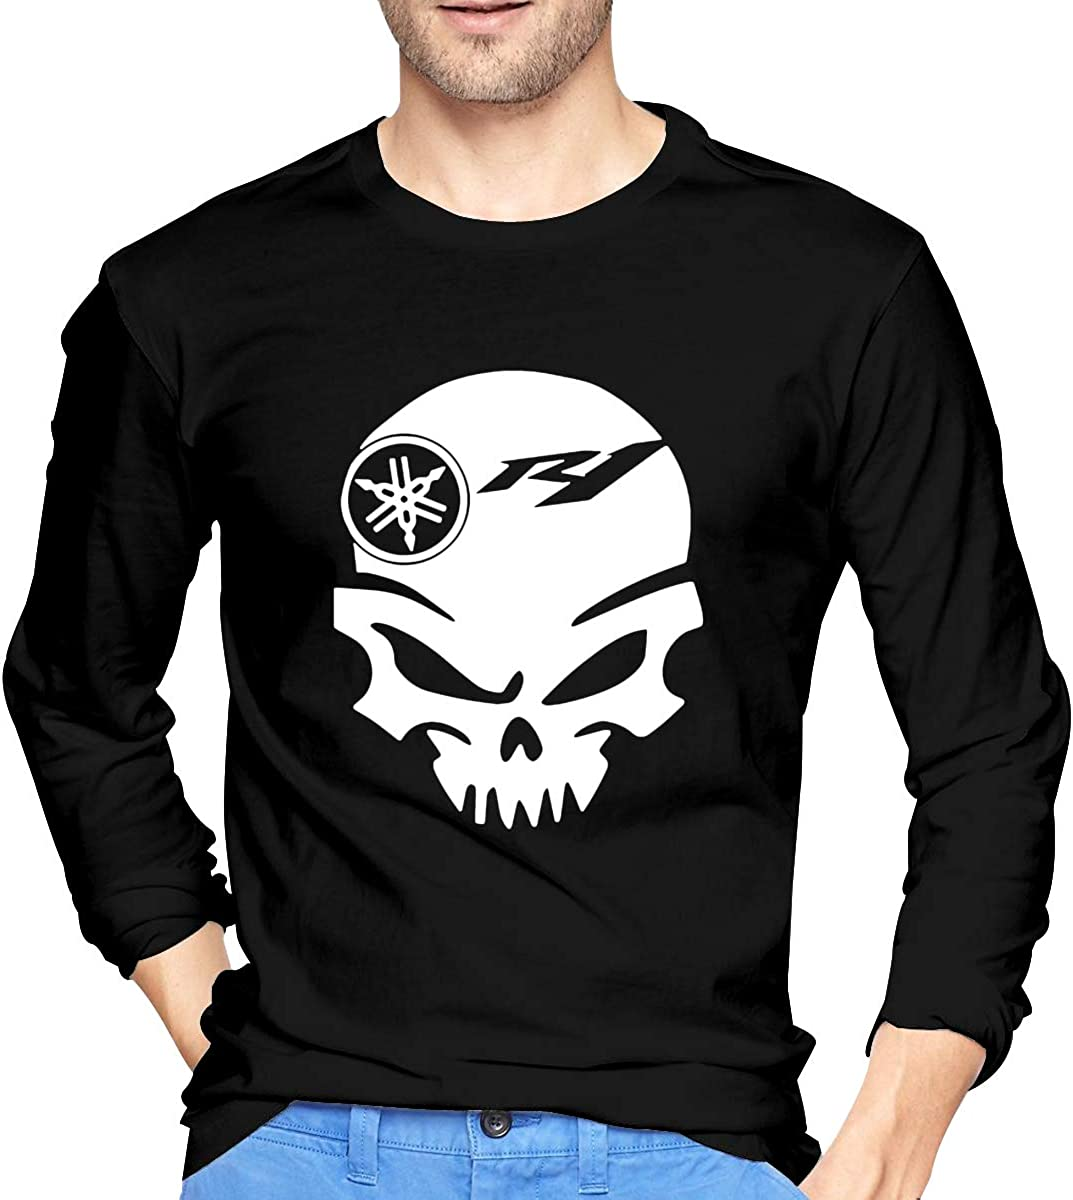 JILILY New Art Motorcycle R1 Skull Logo Fashion Shirt O-Neck Cotton for Male Black